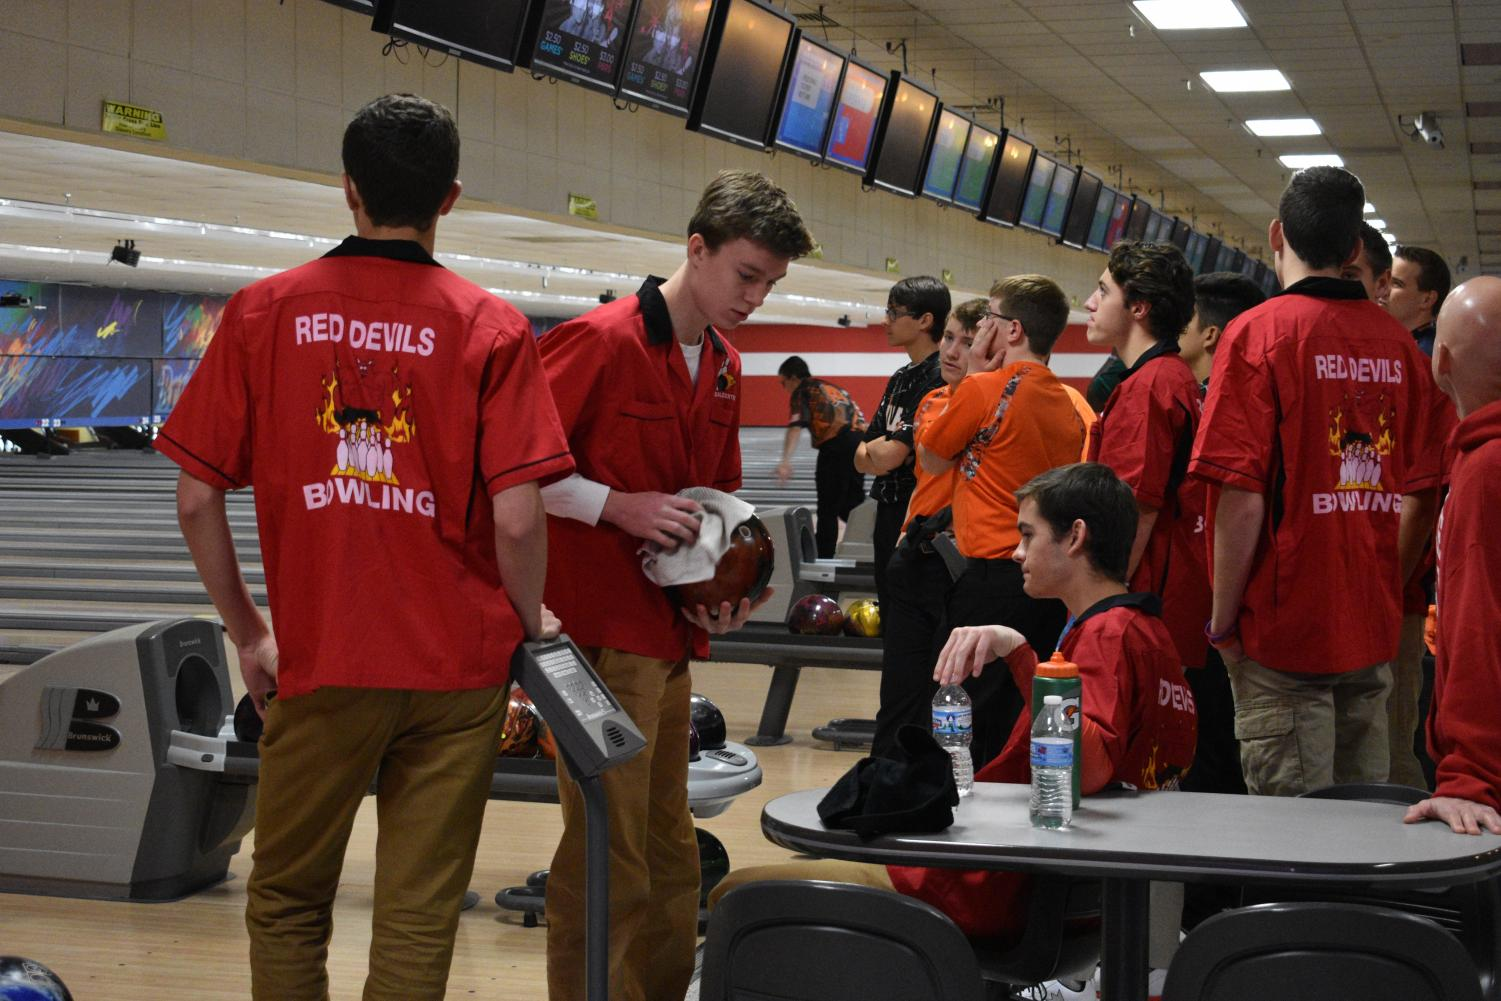 The Red Devils didn't finish as strong as they hoped, but they did make school history.